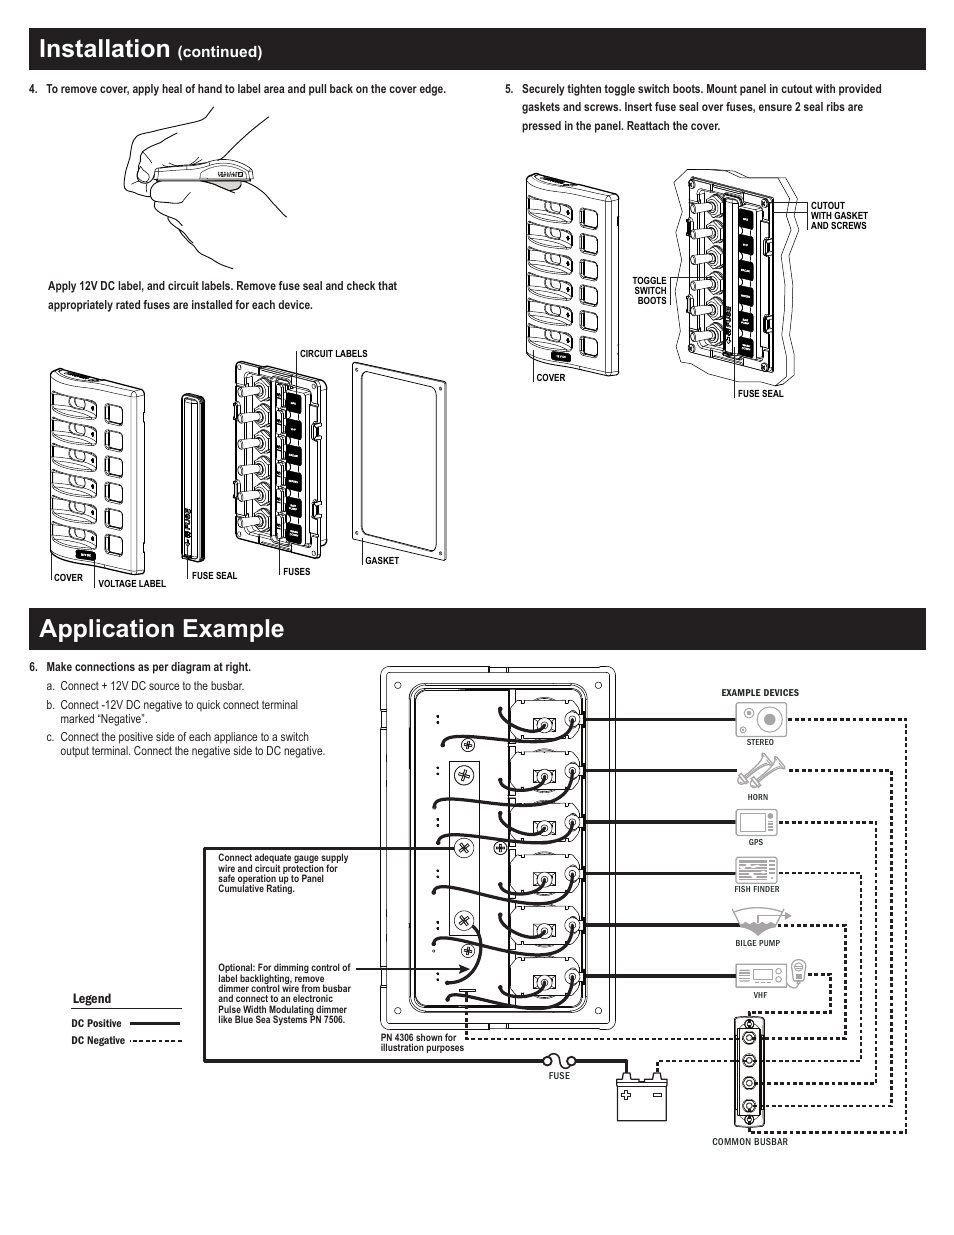 water proof labels for fuse box   31 wiring diagram images